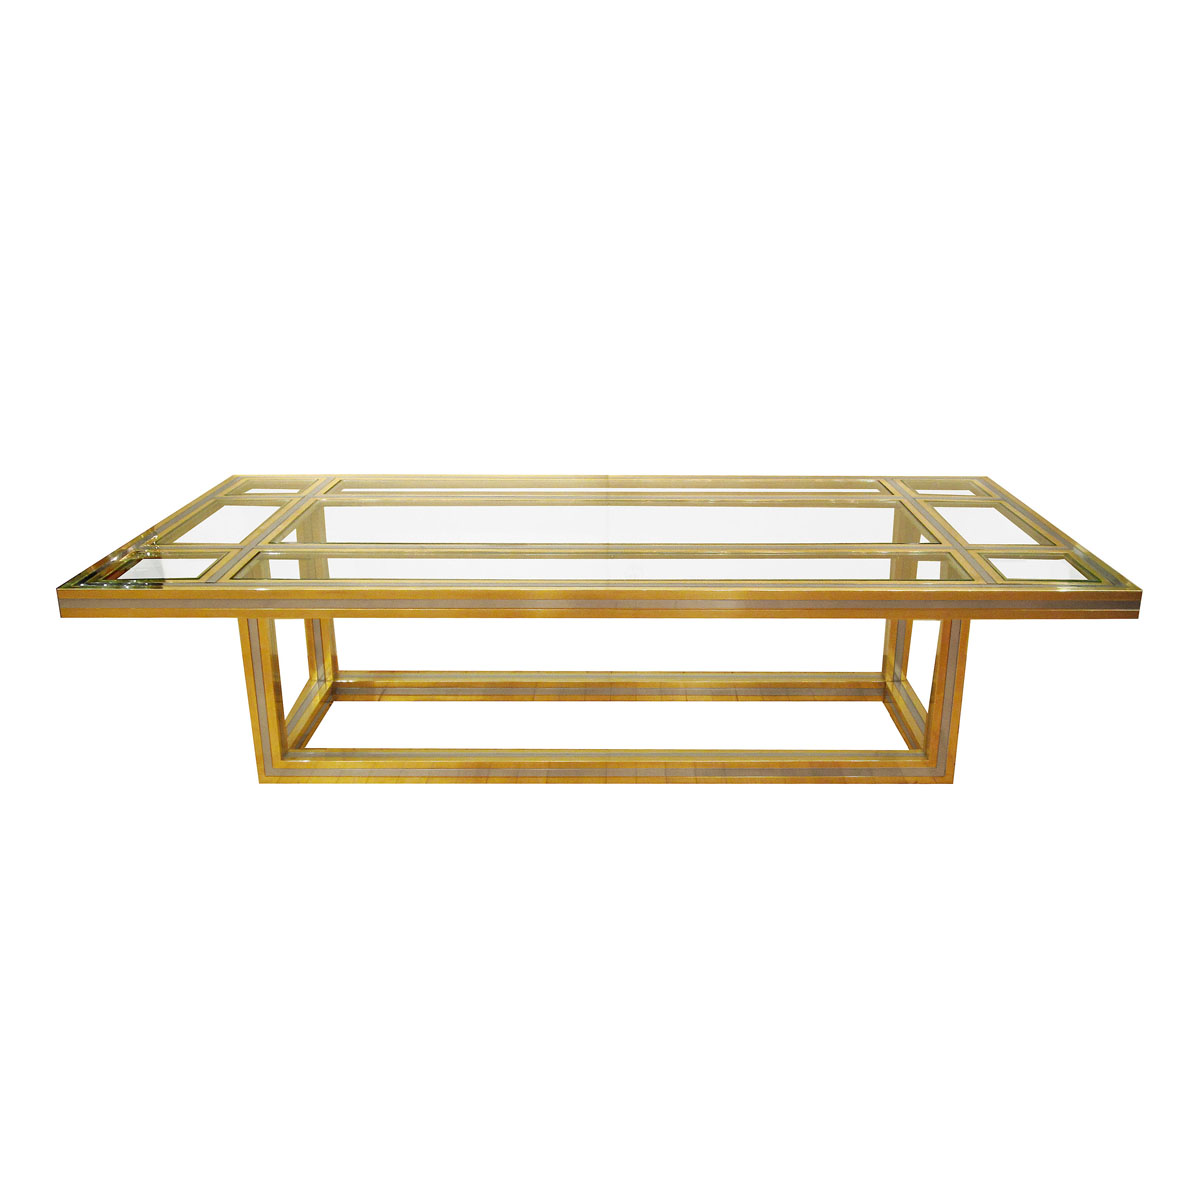 Brass And Stainless Steel Coffee Table With Glass Insets Coffee Tables John Salibello